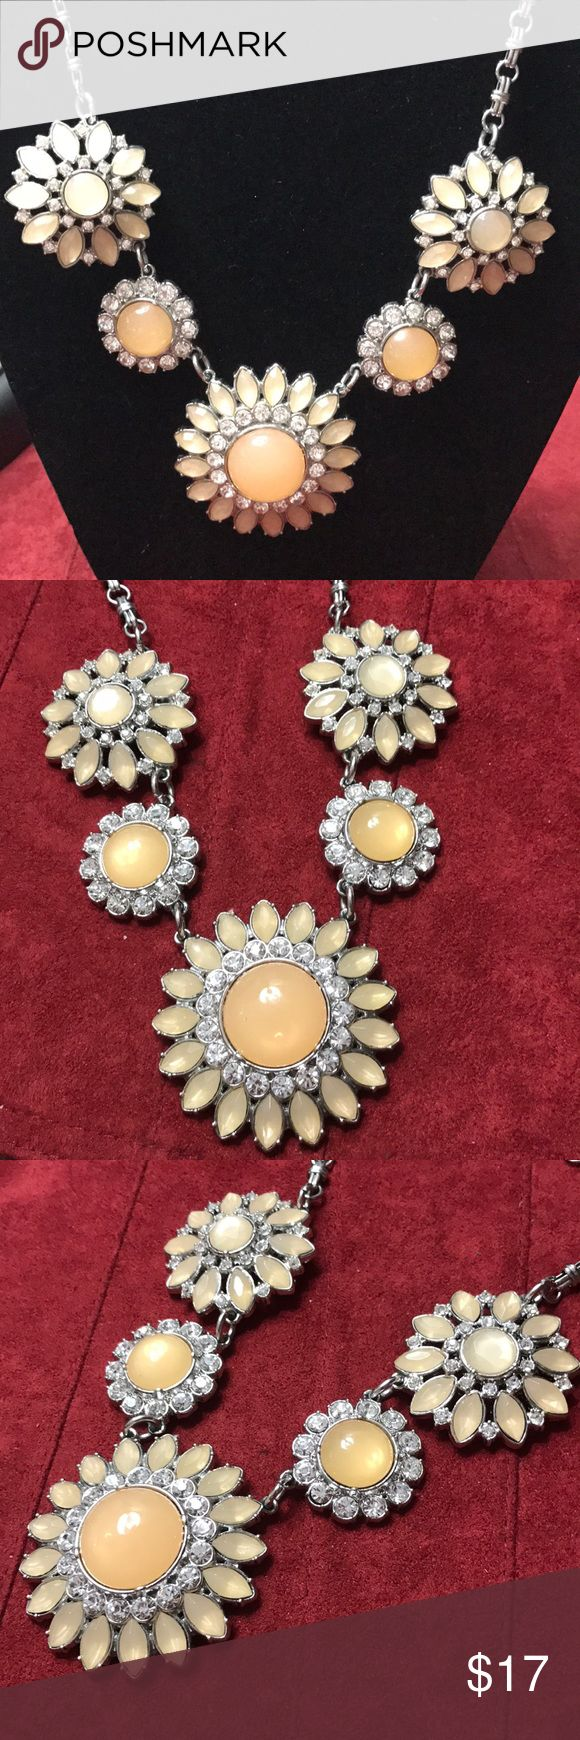 Flower statement necklace - Lia Sophia Bold statement necklace from Lia Sophia.  5 crystal flowers with light peach colored stones and crystal accents!  Beautiful piece!  Hangs 16 inches (also has an additional 3 inch extender).  Biggest flower is 2 inches. Lia Sophia Jewelry Necklaces